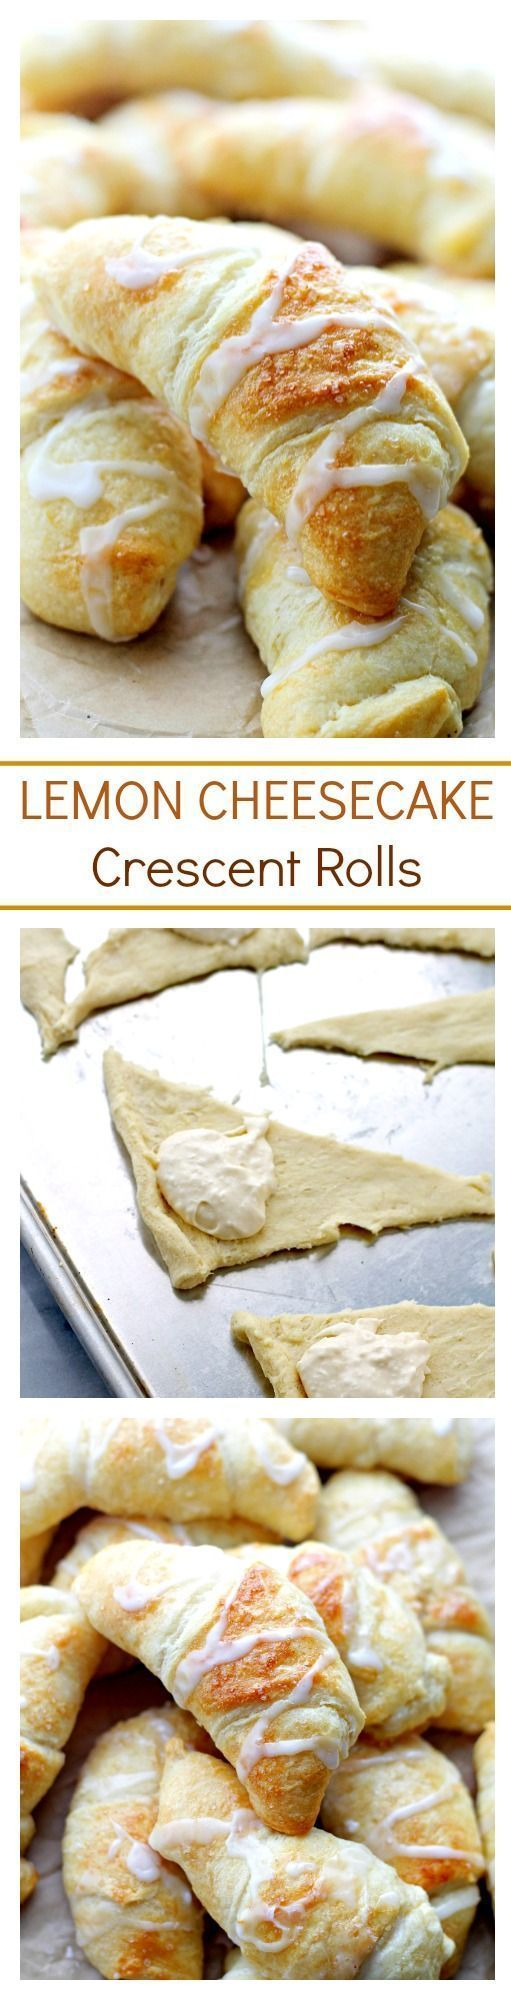 Lemon Cheesecake Crescent Rolls Lemon Cheesecake Crescent Rolls diethood Super easy and incredibly soft Crescent Rolls filled with a sweet and delicious lemon and cream cheese mixture.